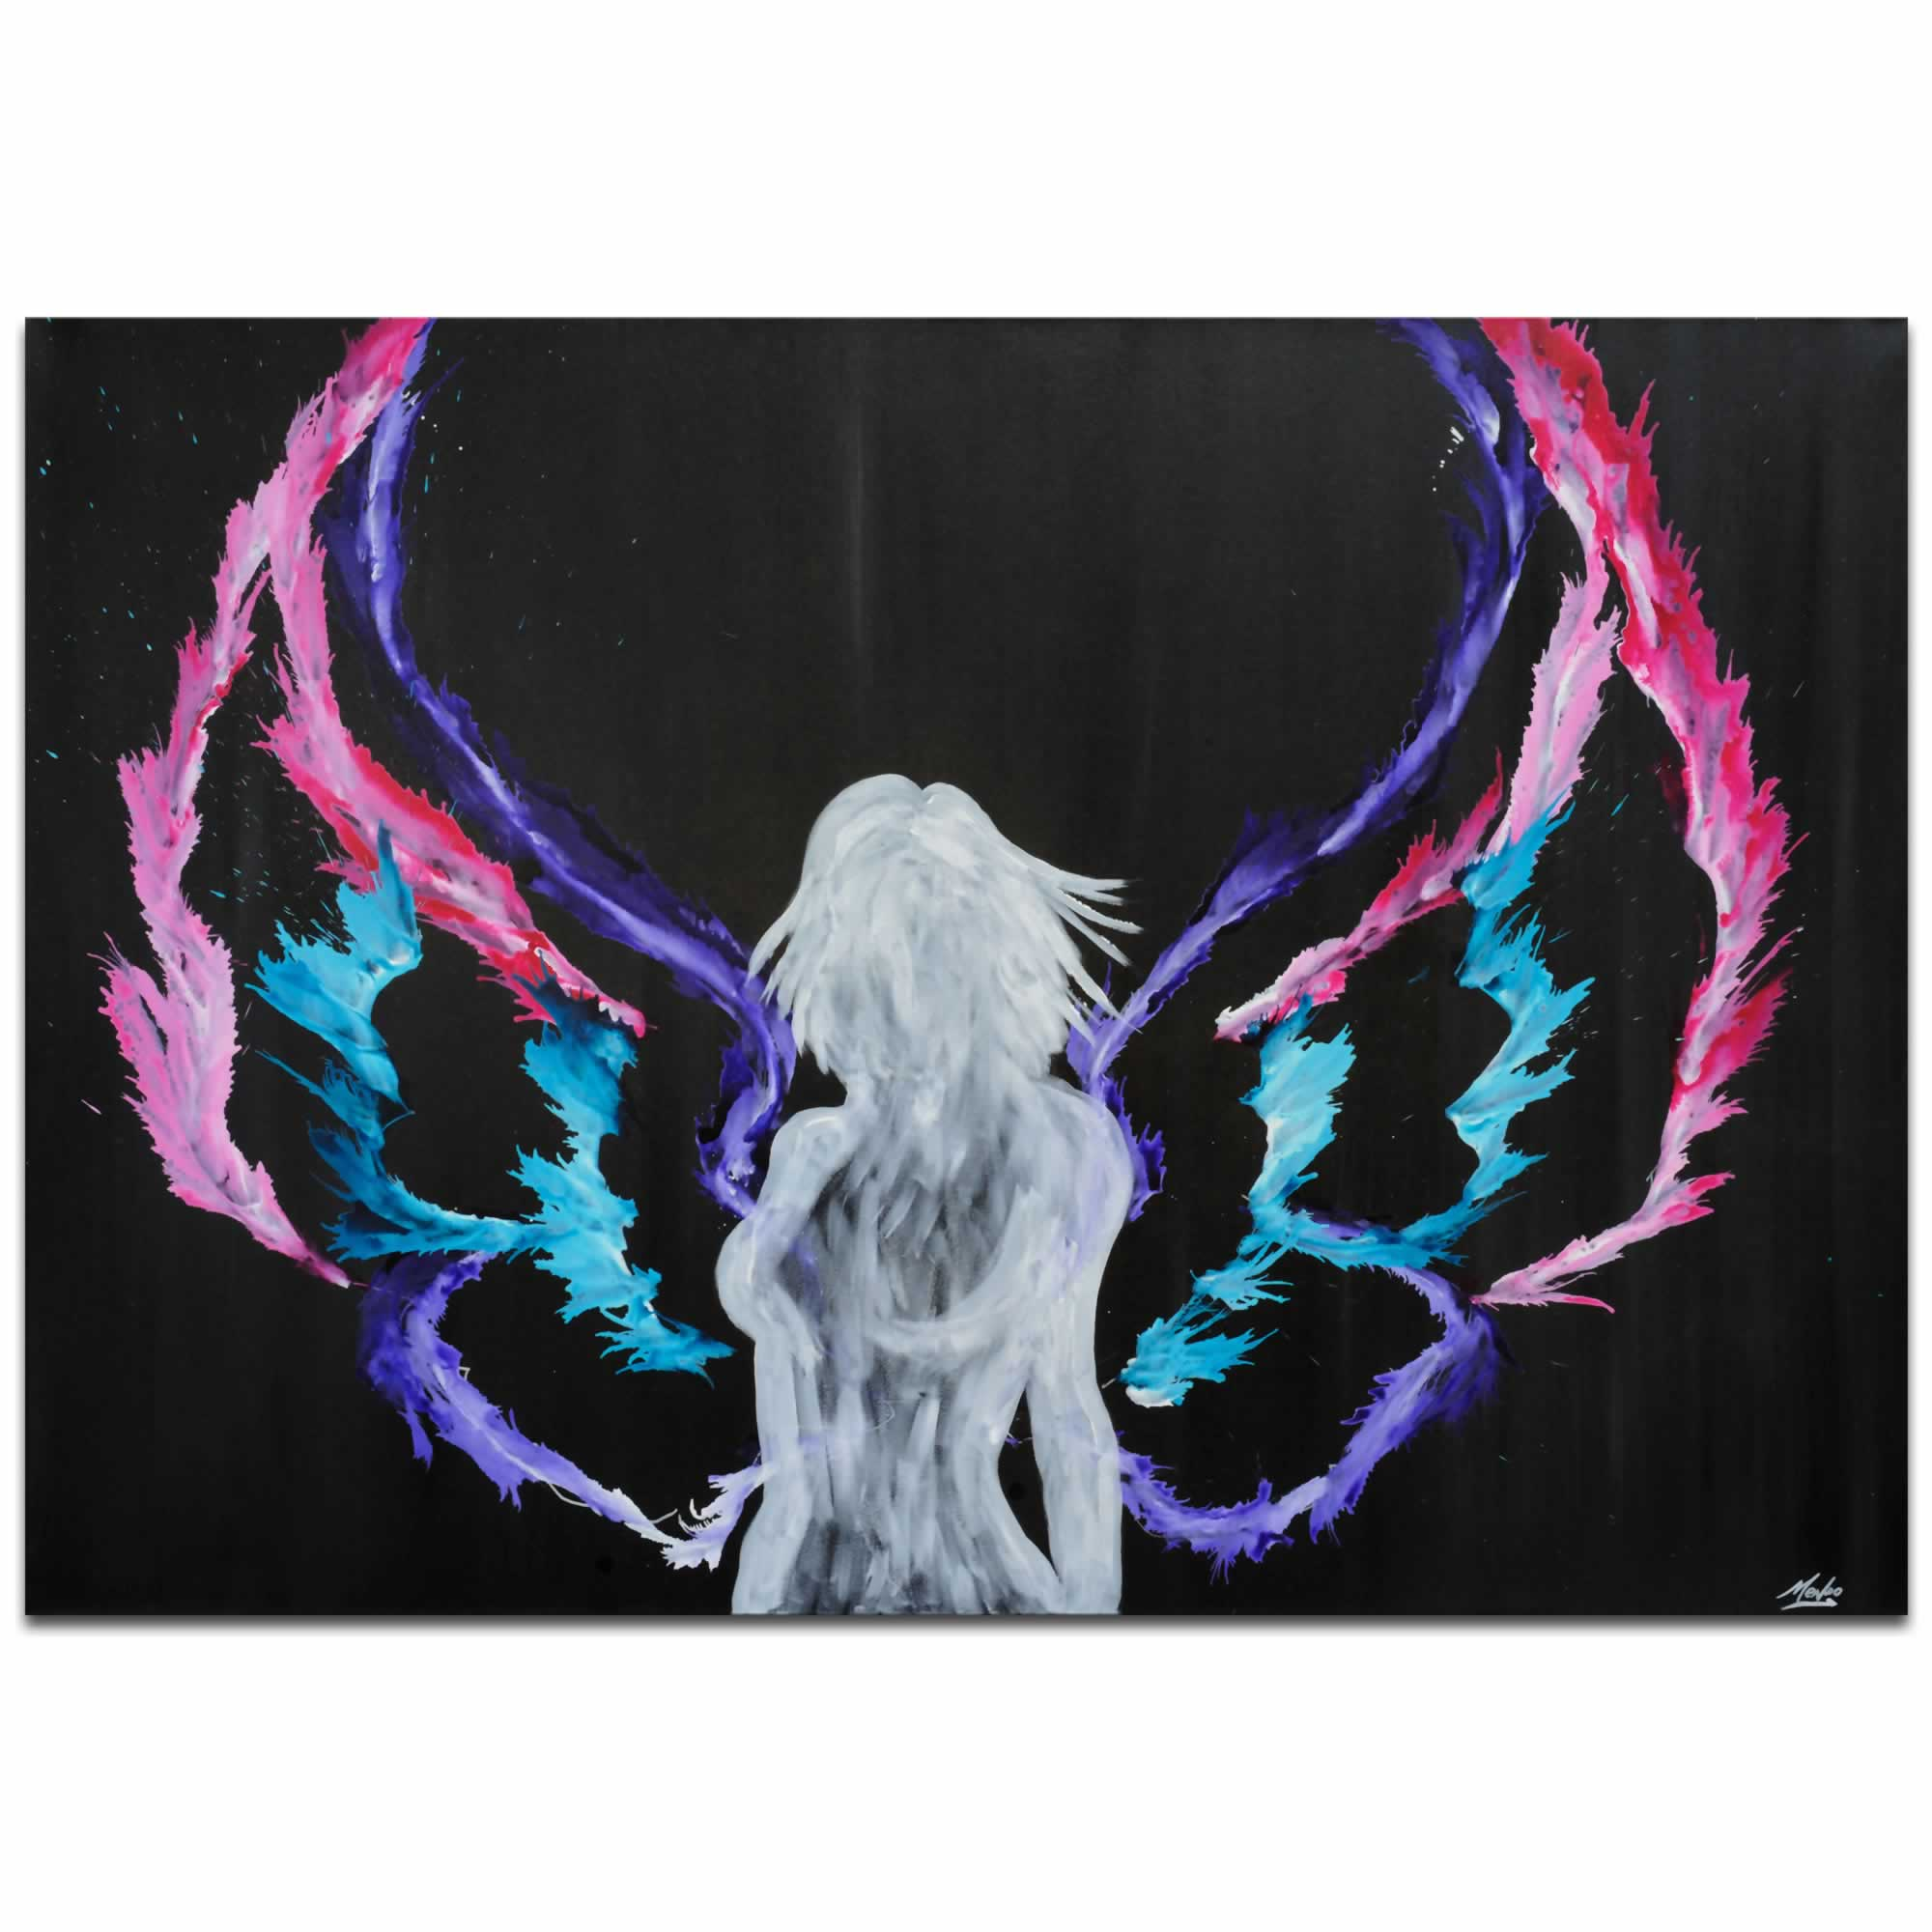 Urban Angel | Contemporary Fantasy Angel Art with Colorful Rainbow Wings, Modern Silhouetted Female Nude Painting Decor